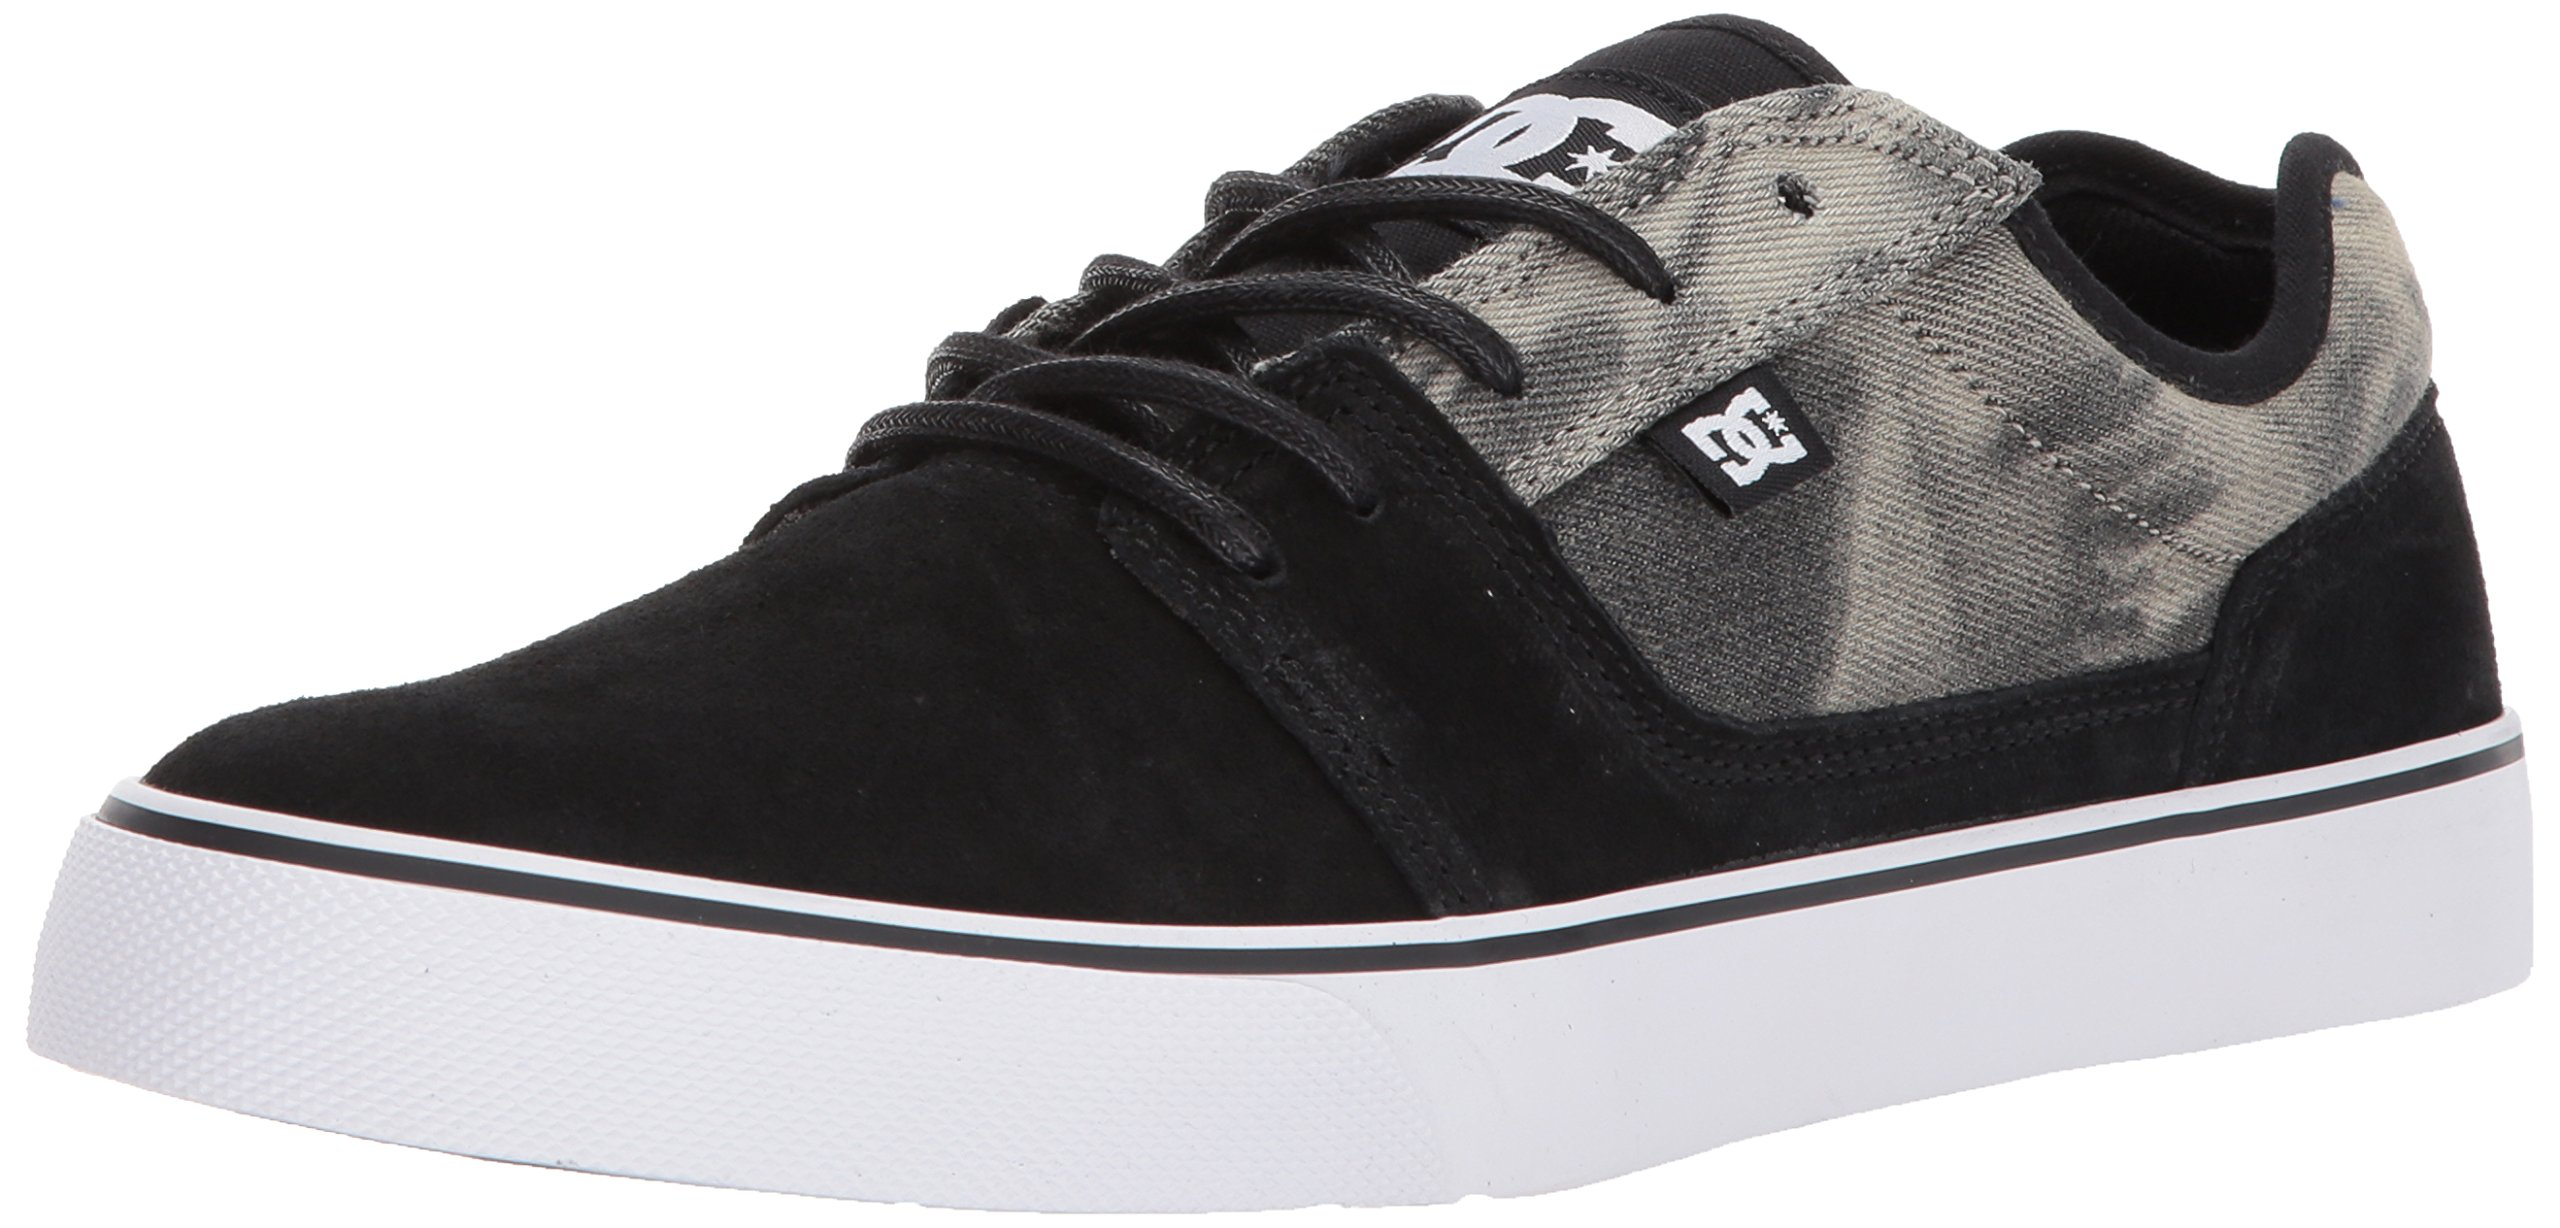 DC Men's Tonik SE Skate Shoe